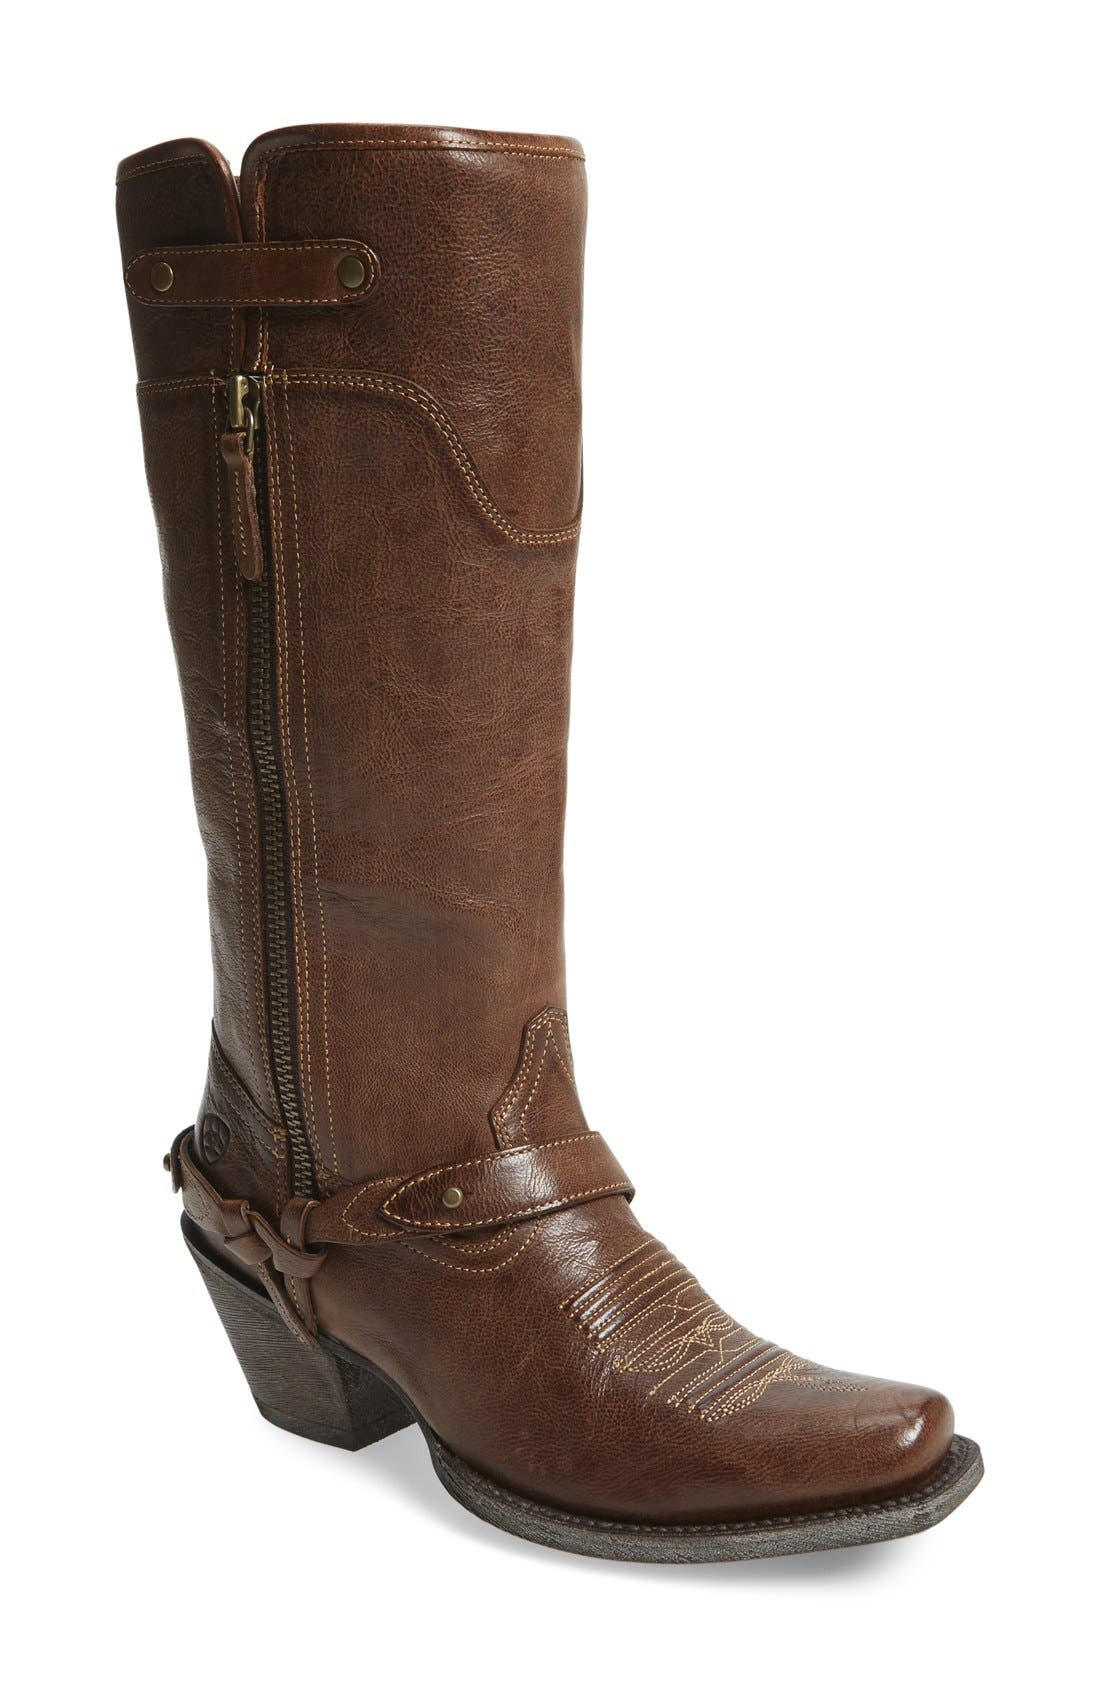 Main Image - Ariat 'Wildflower' Boot (Women)